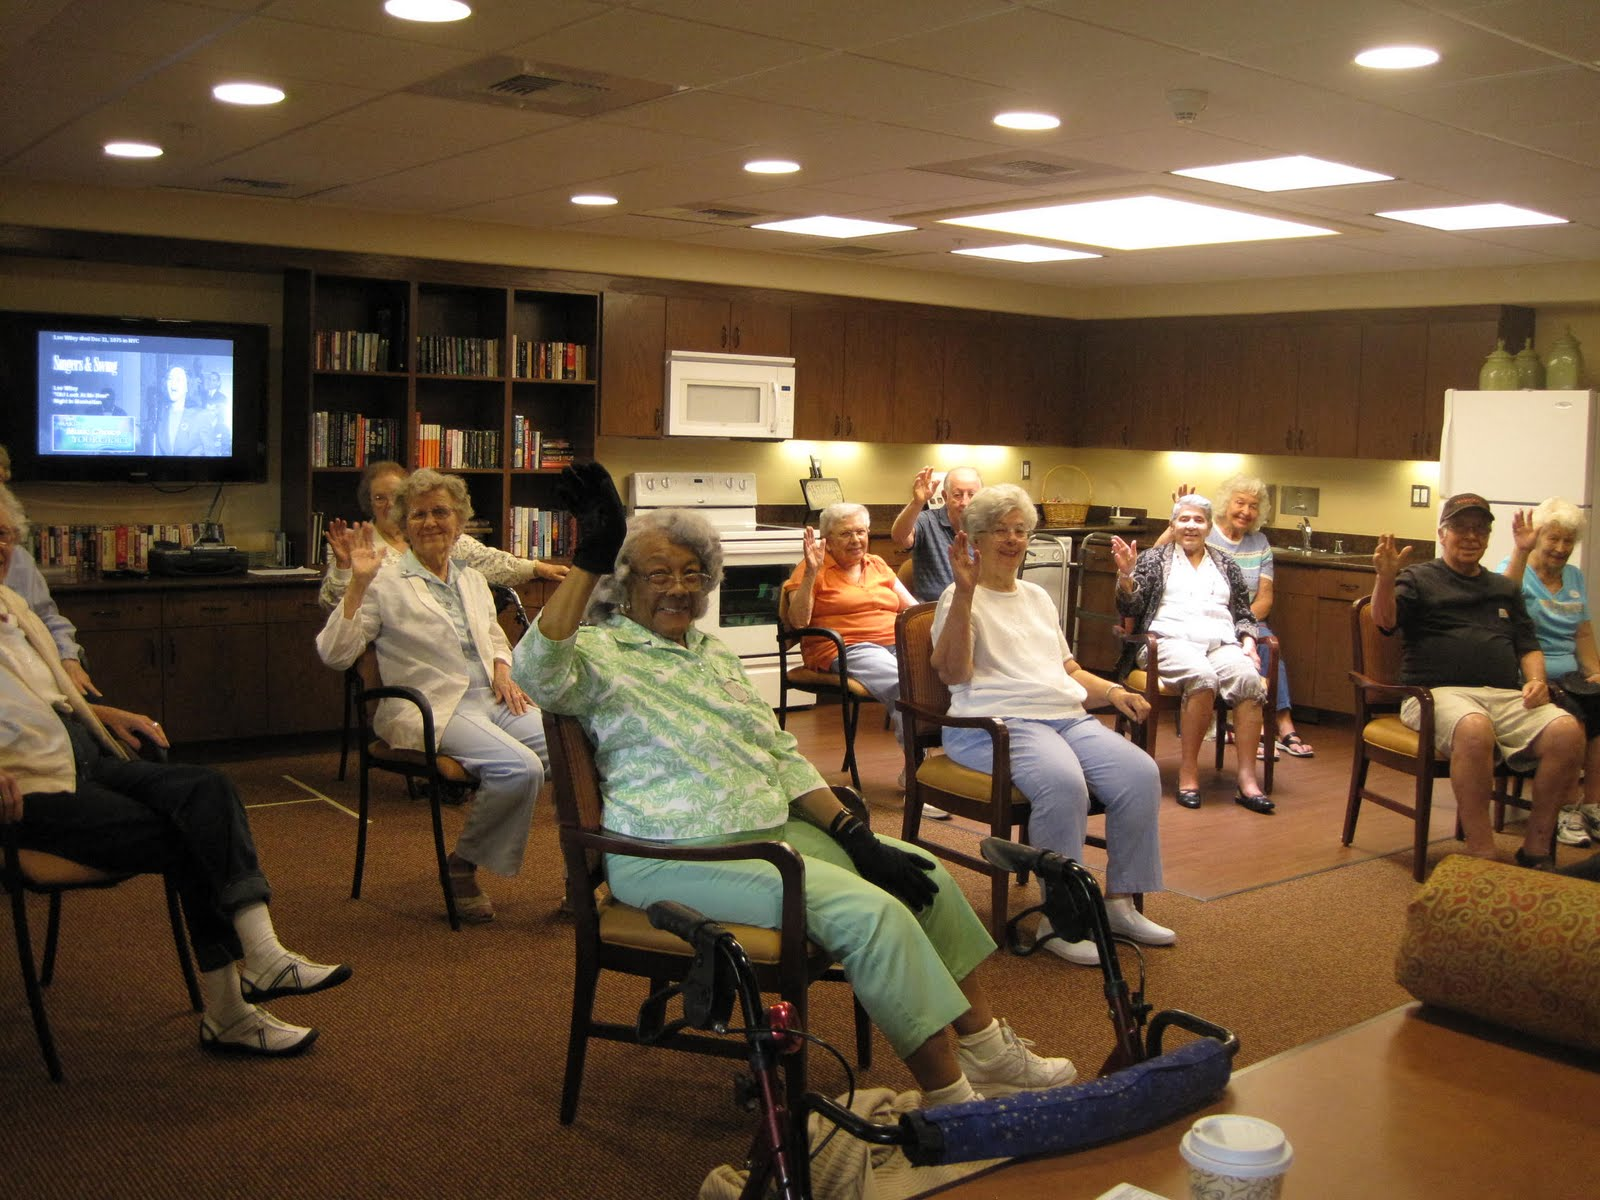 30 Minute Chair Workout For Seniors High Top Tables And Chairs Valencia Terrace Blog